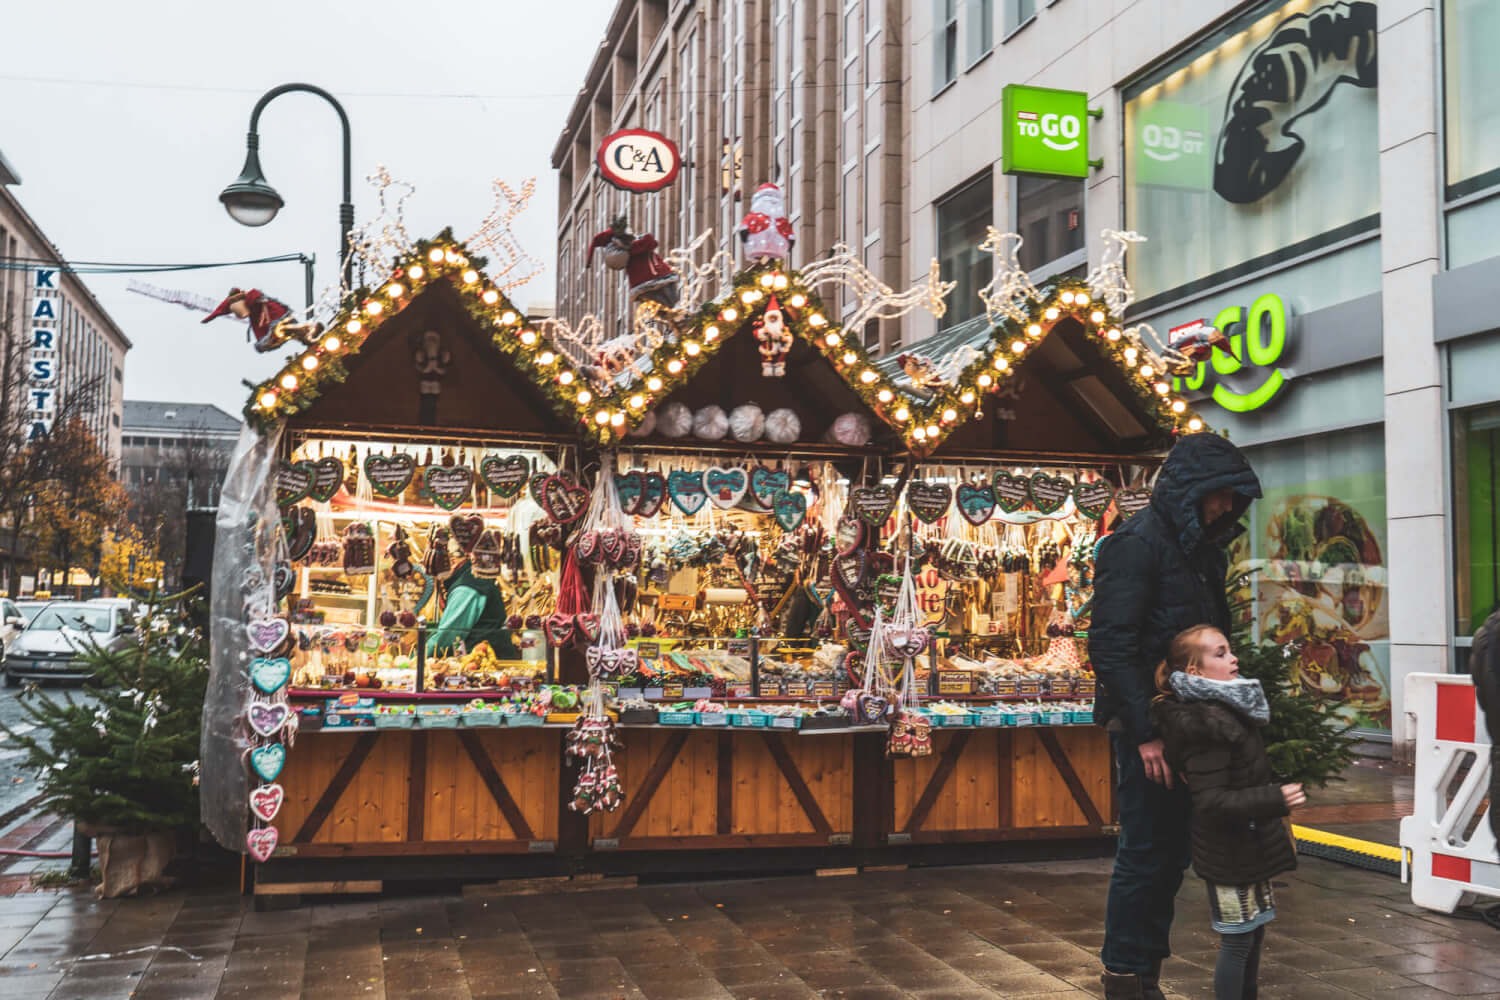 Dusseldorf Christmas Market, one of the best Christmas markets in Germany